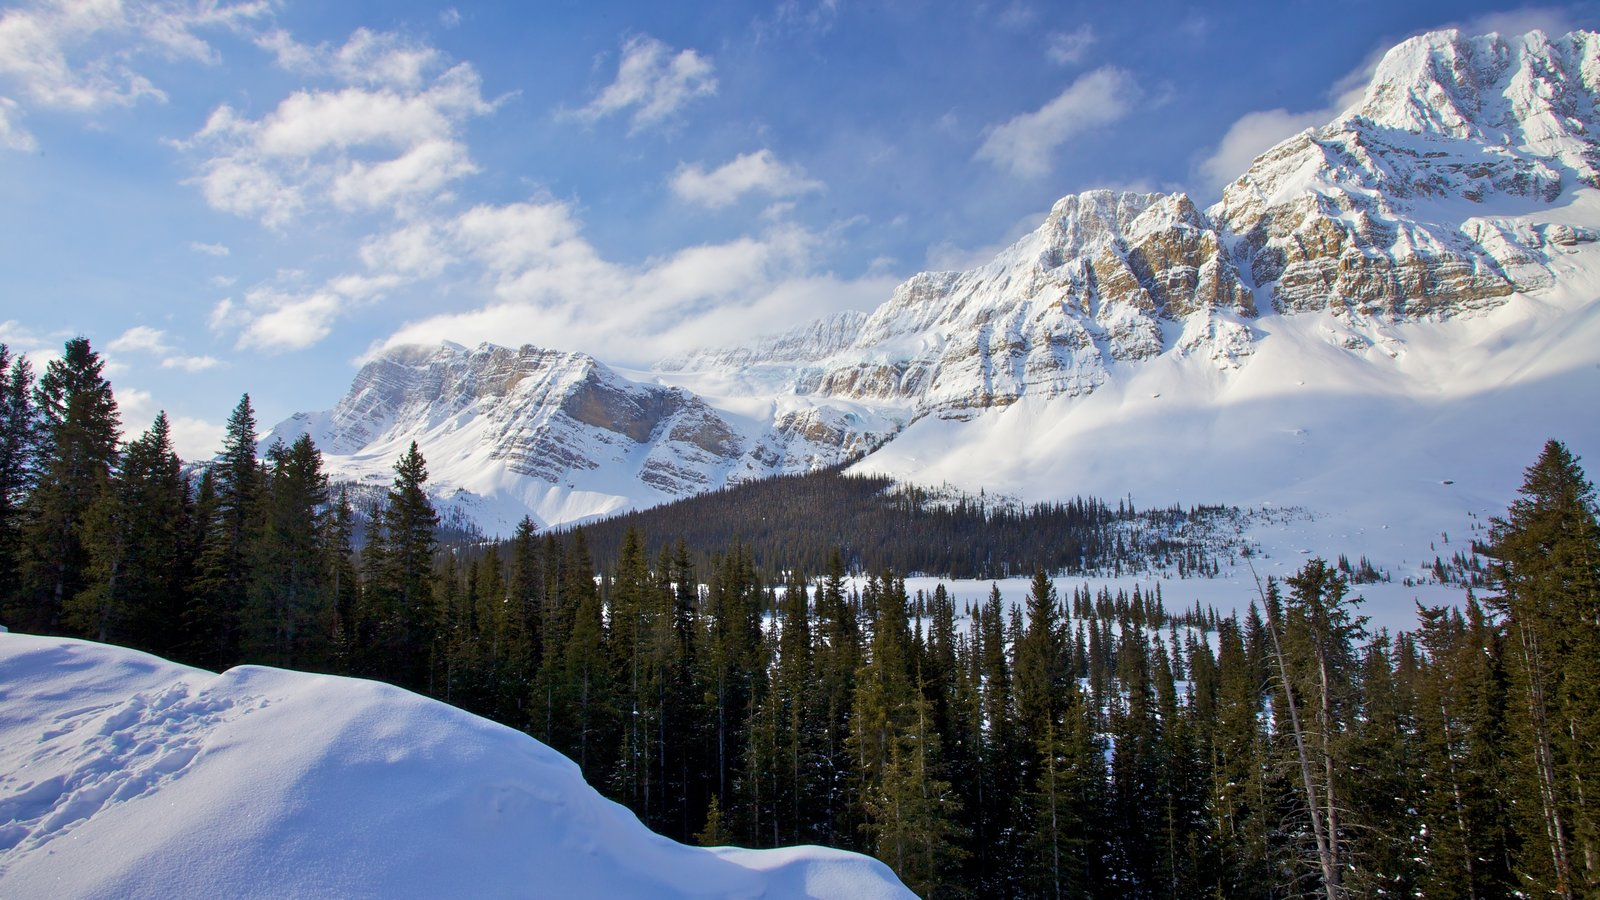 Icefields Parkway showing snow, landscape views and forests